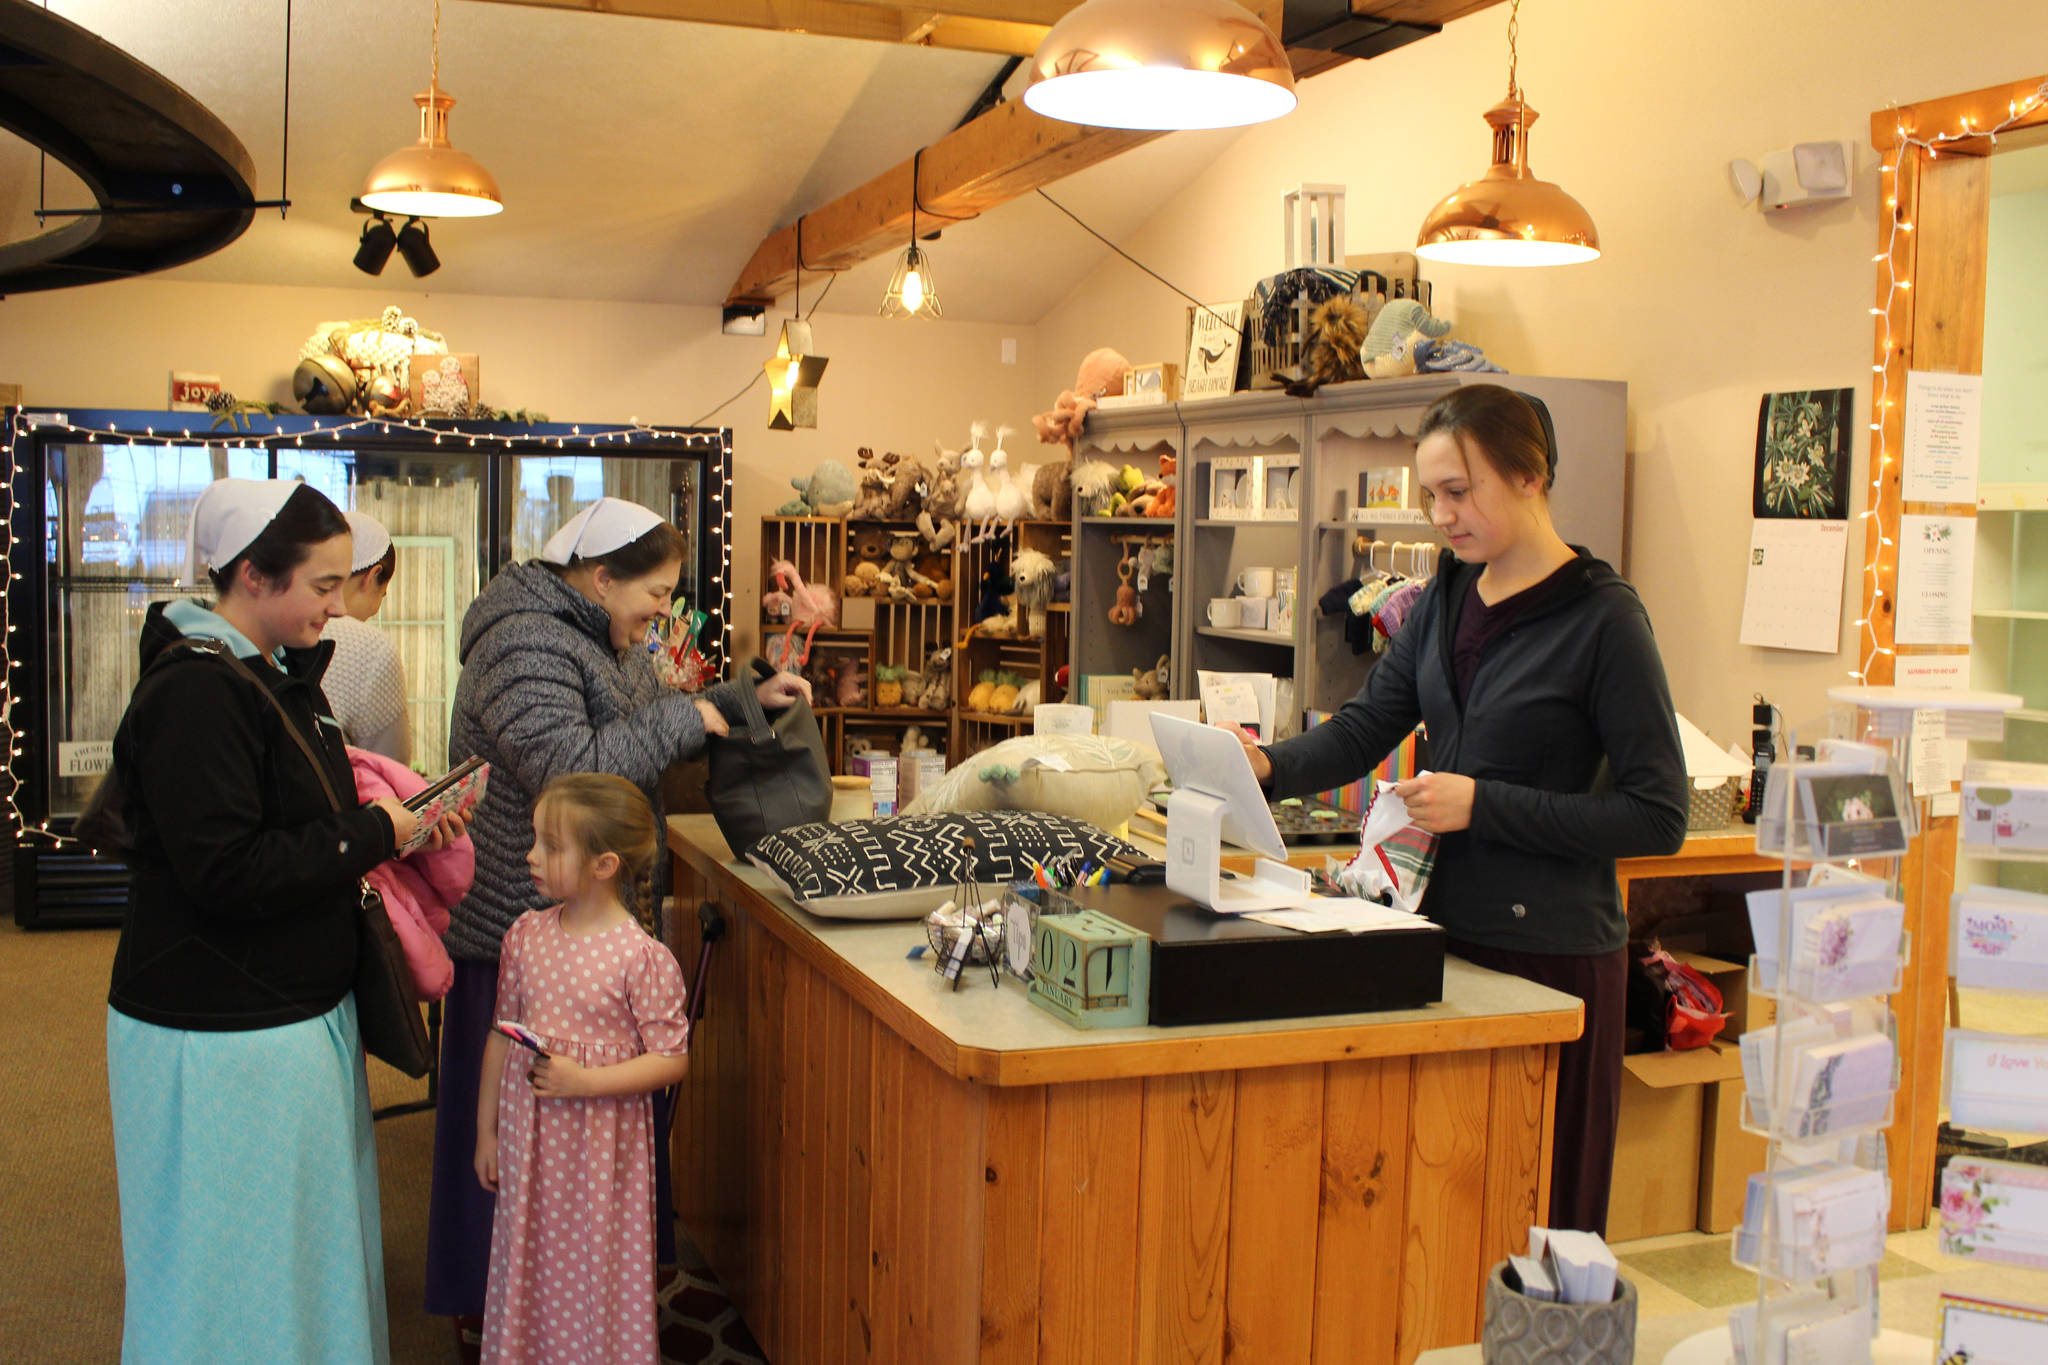 Brian Mazurek/Peninsula Clarion  From left, Sheryl Christner, Julia Christner, Ruby Eicher and Audrey Christner shop at Kate's Flowers and Gifts in Soldotna while Kate Mastre rings them up on Saturday.